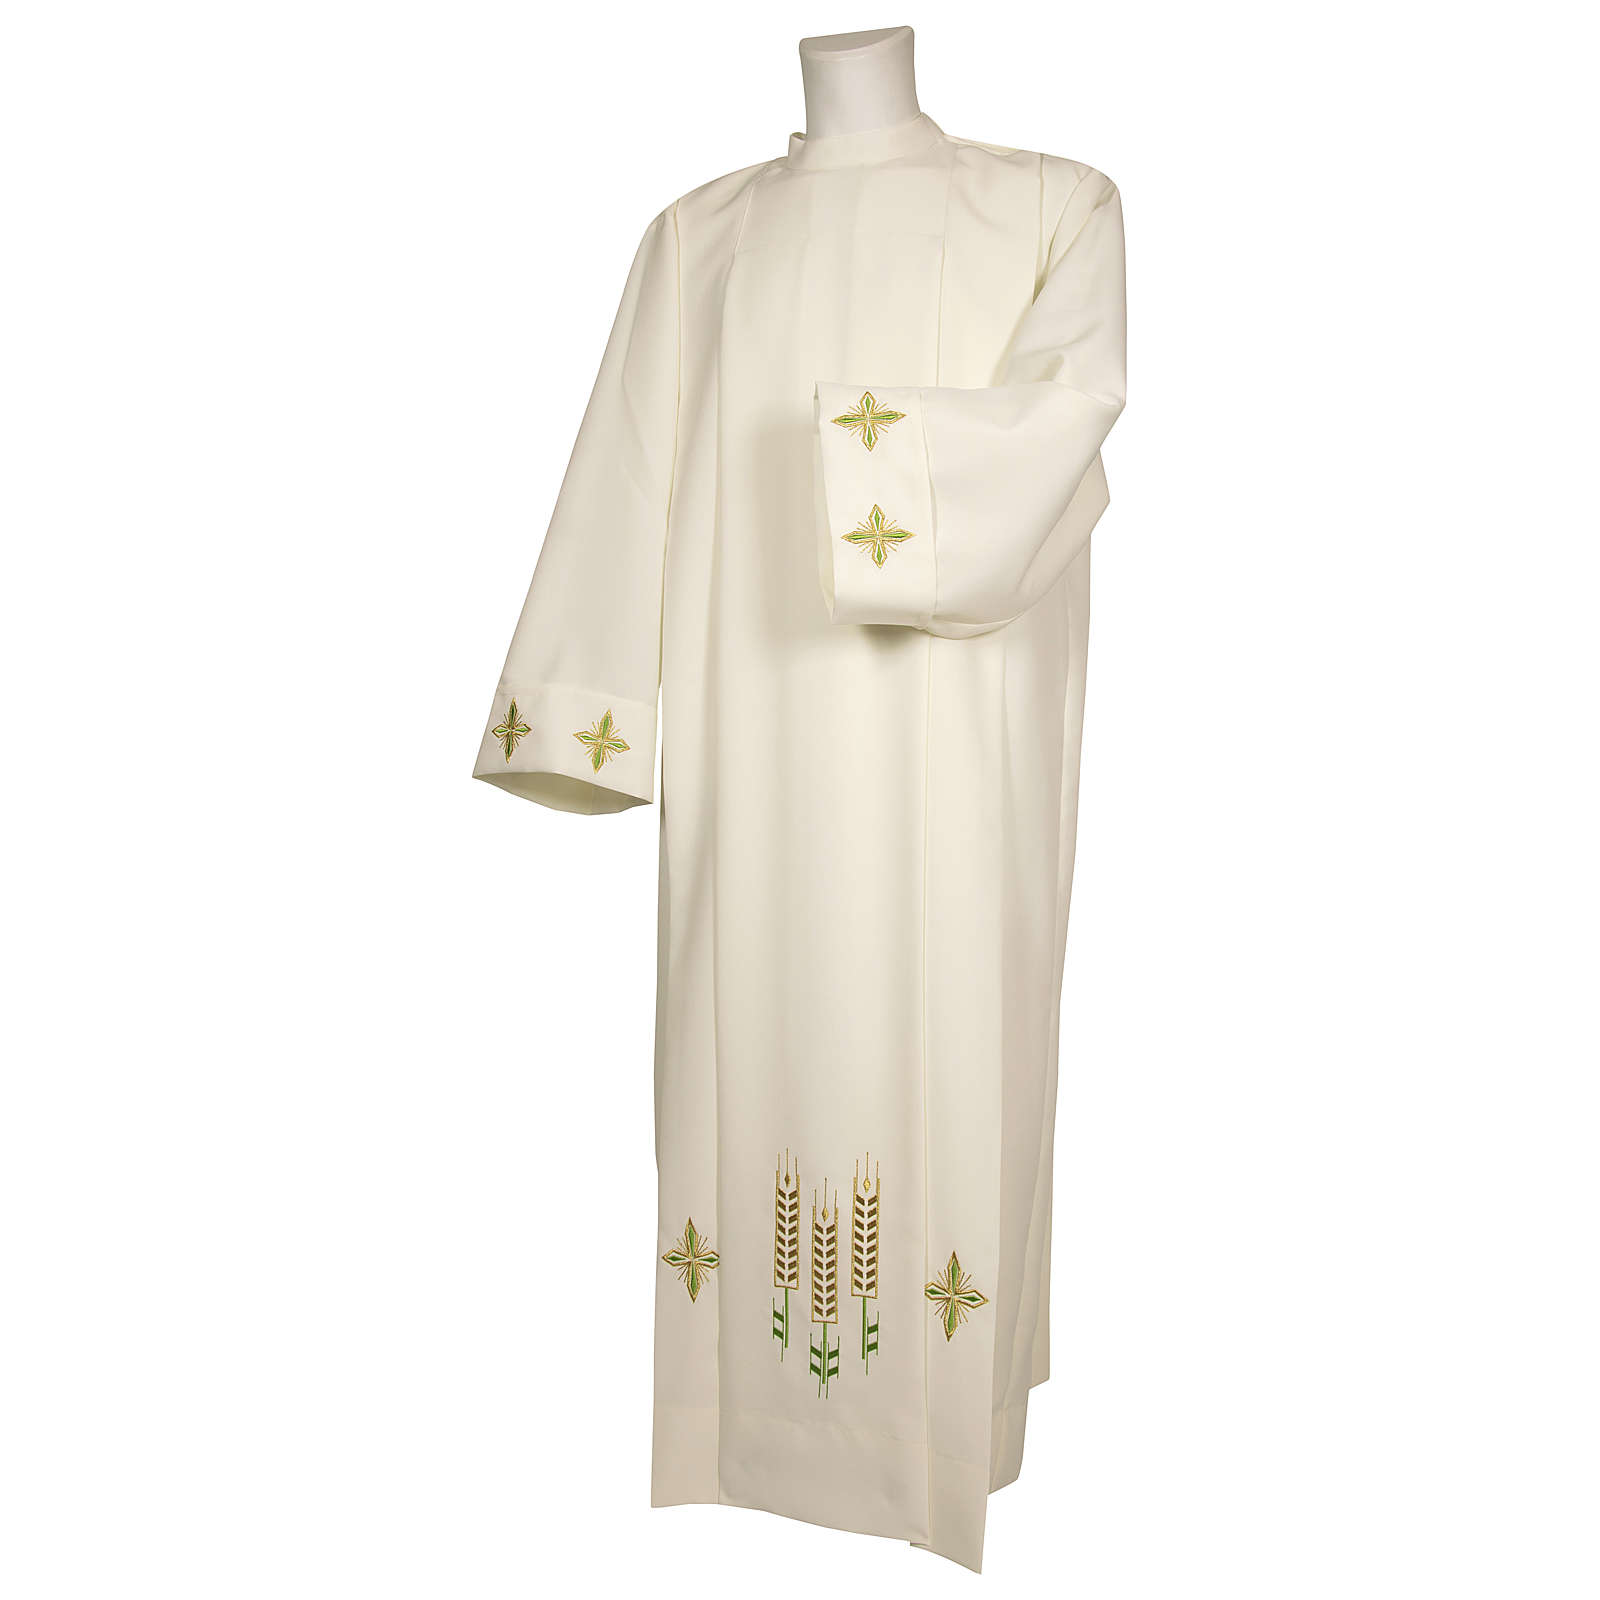 Ivory alb 100% polyester with ears of wheat decoration and zip on the front 4